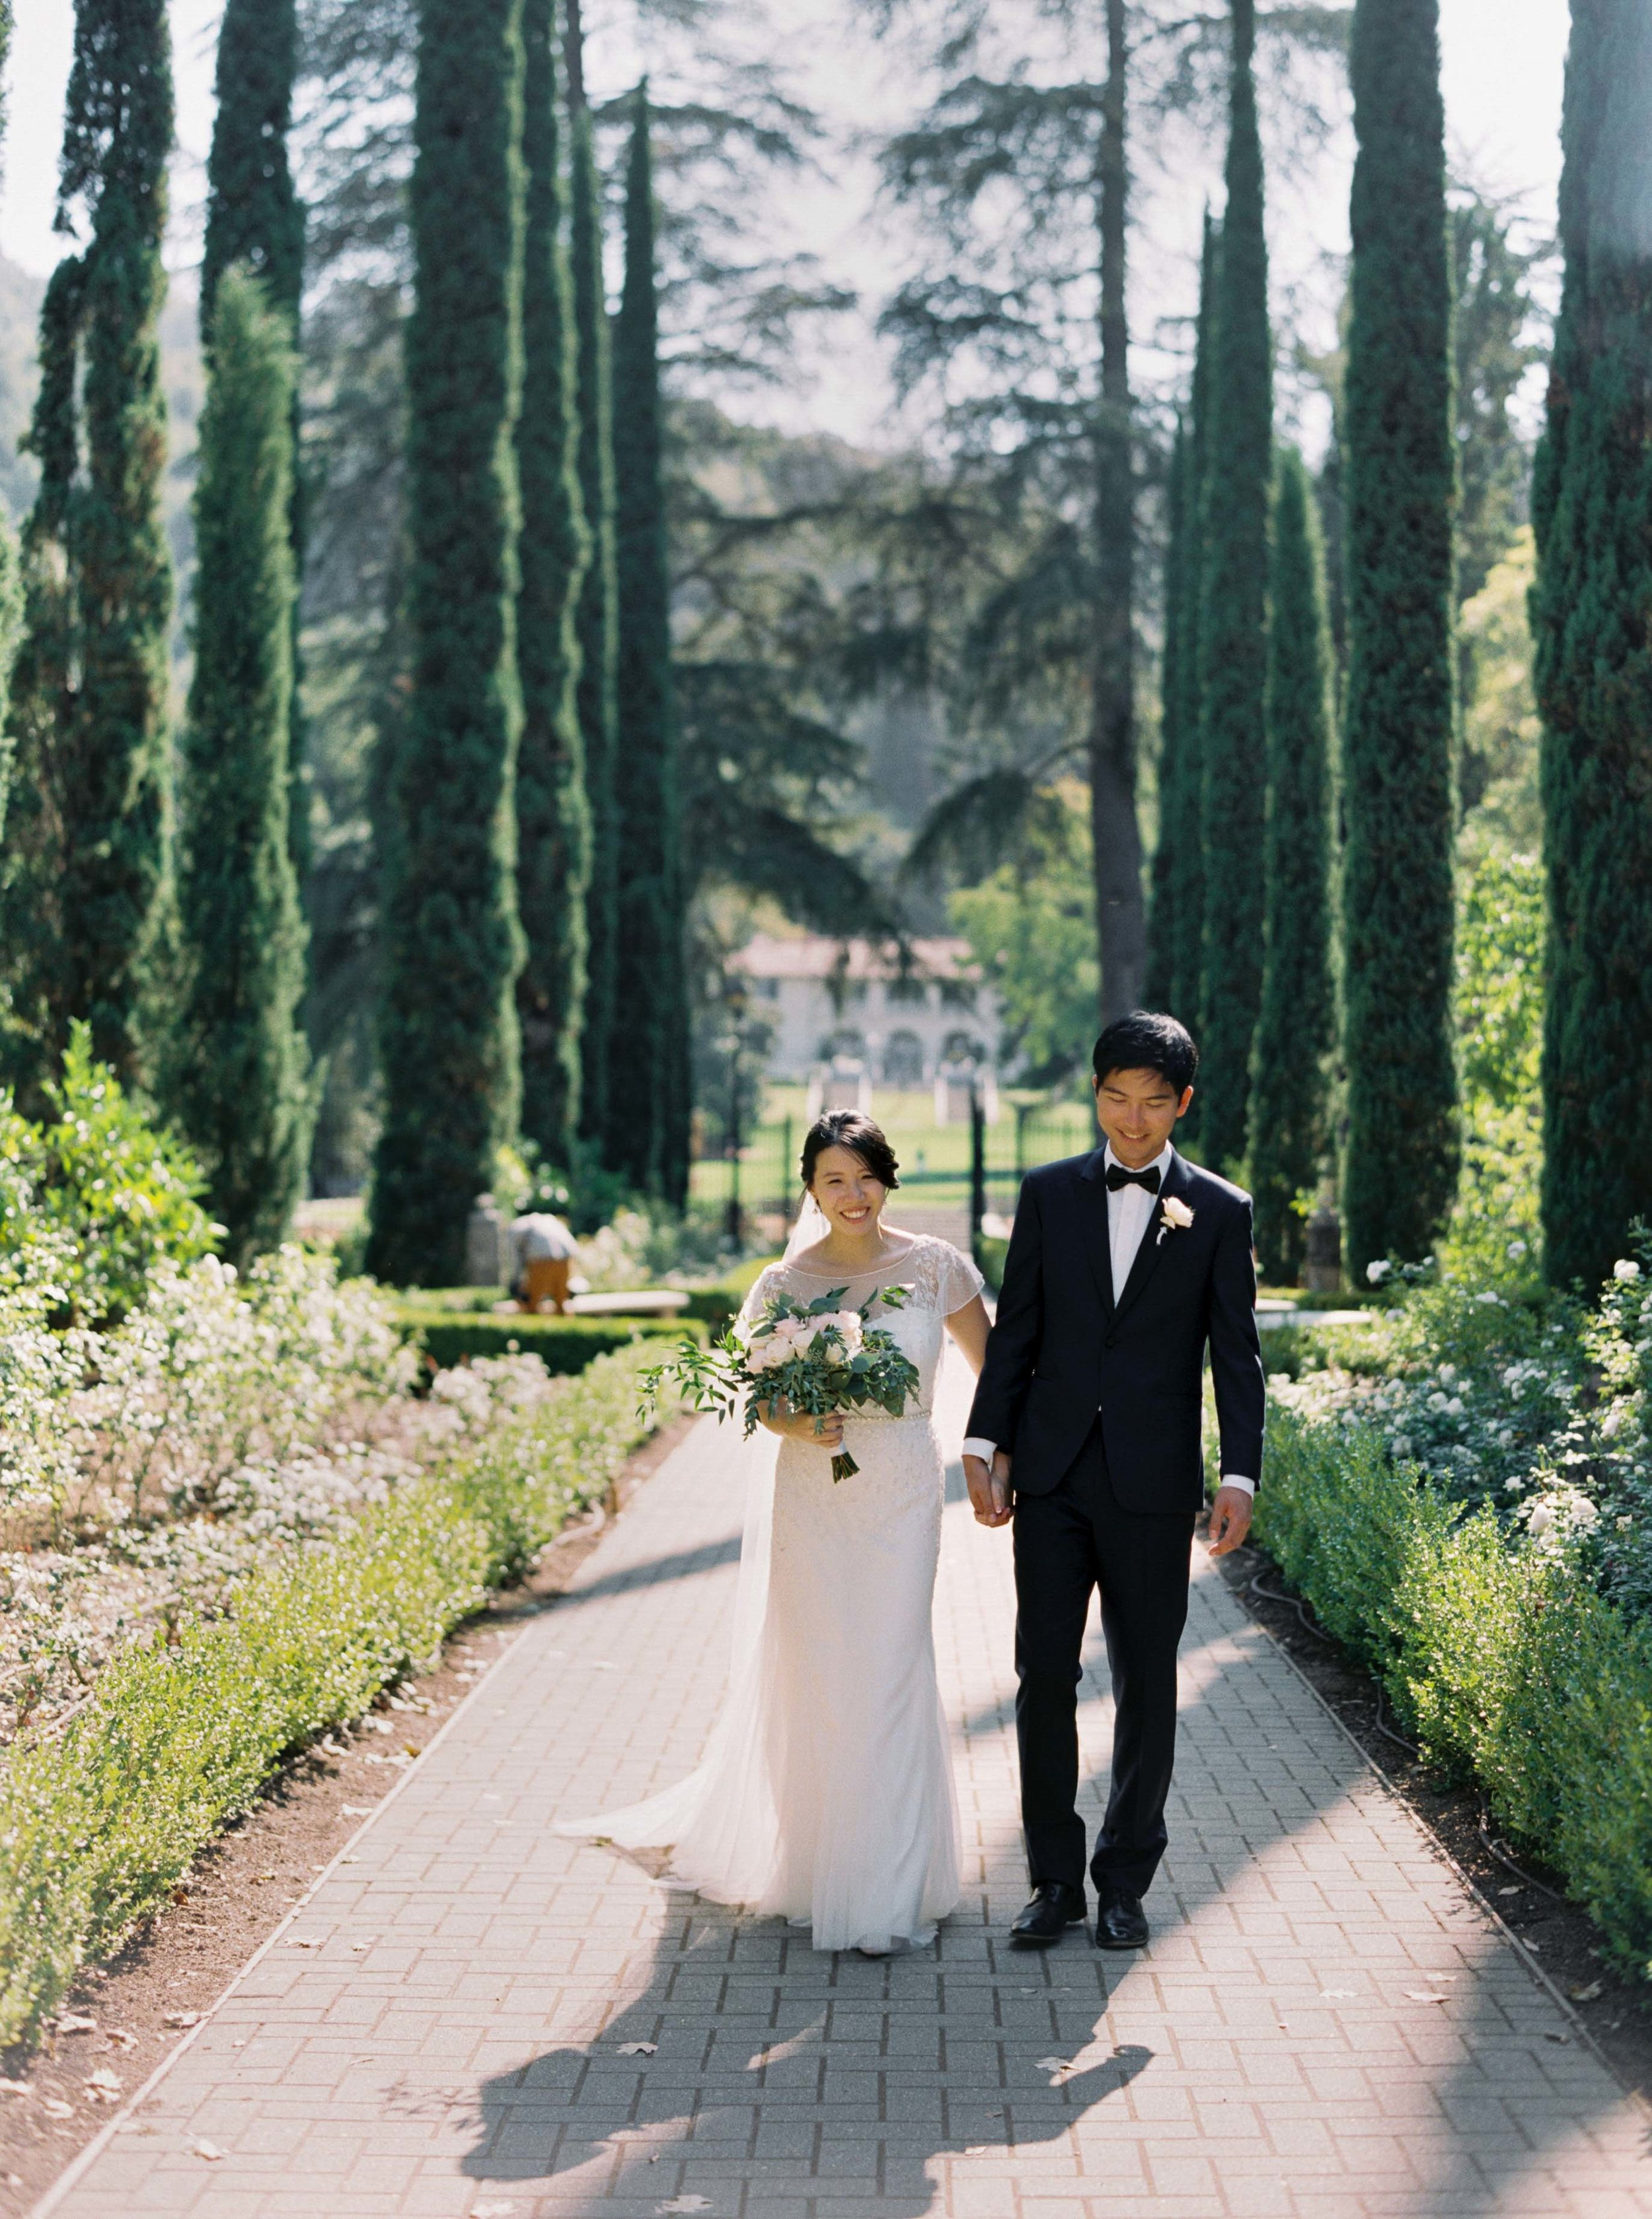 Villa_Montalvo_Wedding_Photographer_Videographer_San_Francisco081.jpg